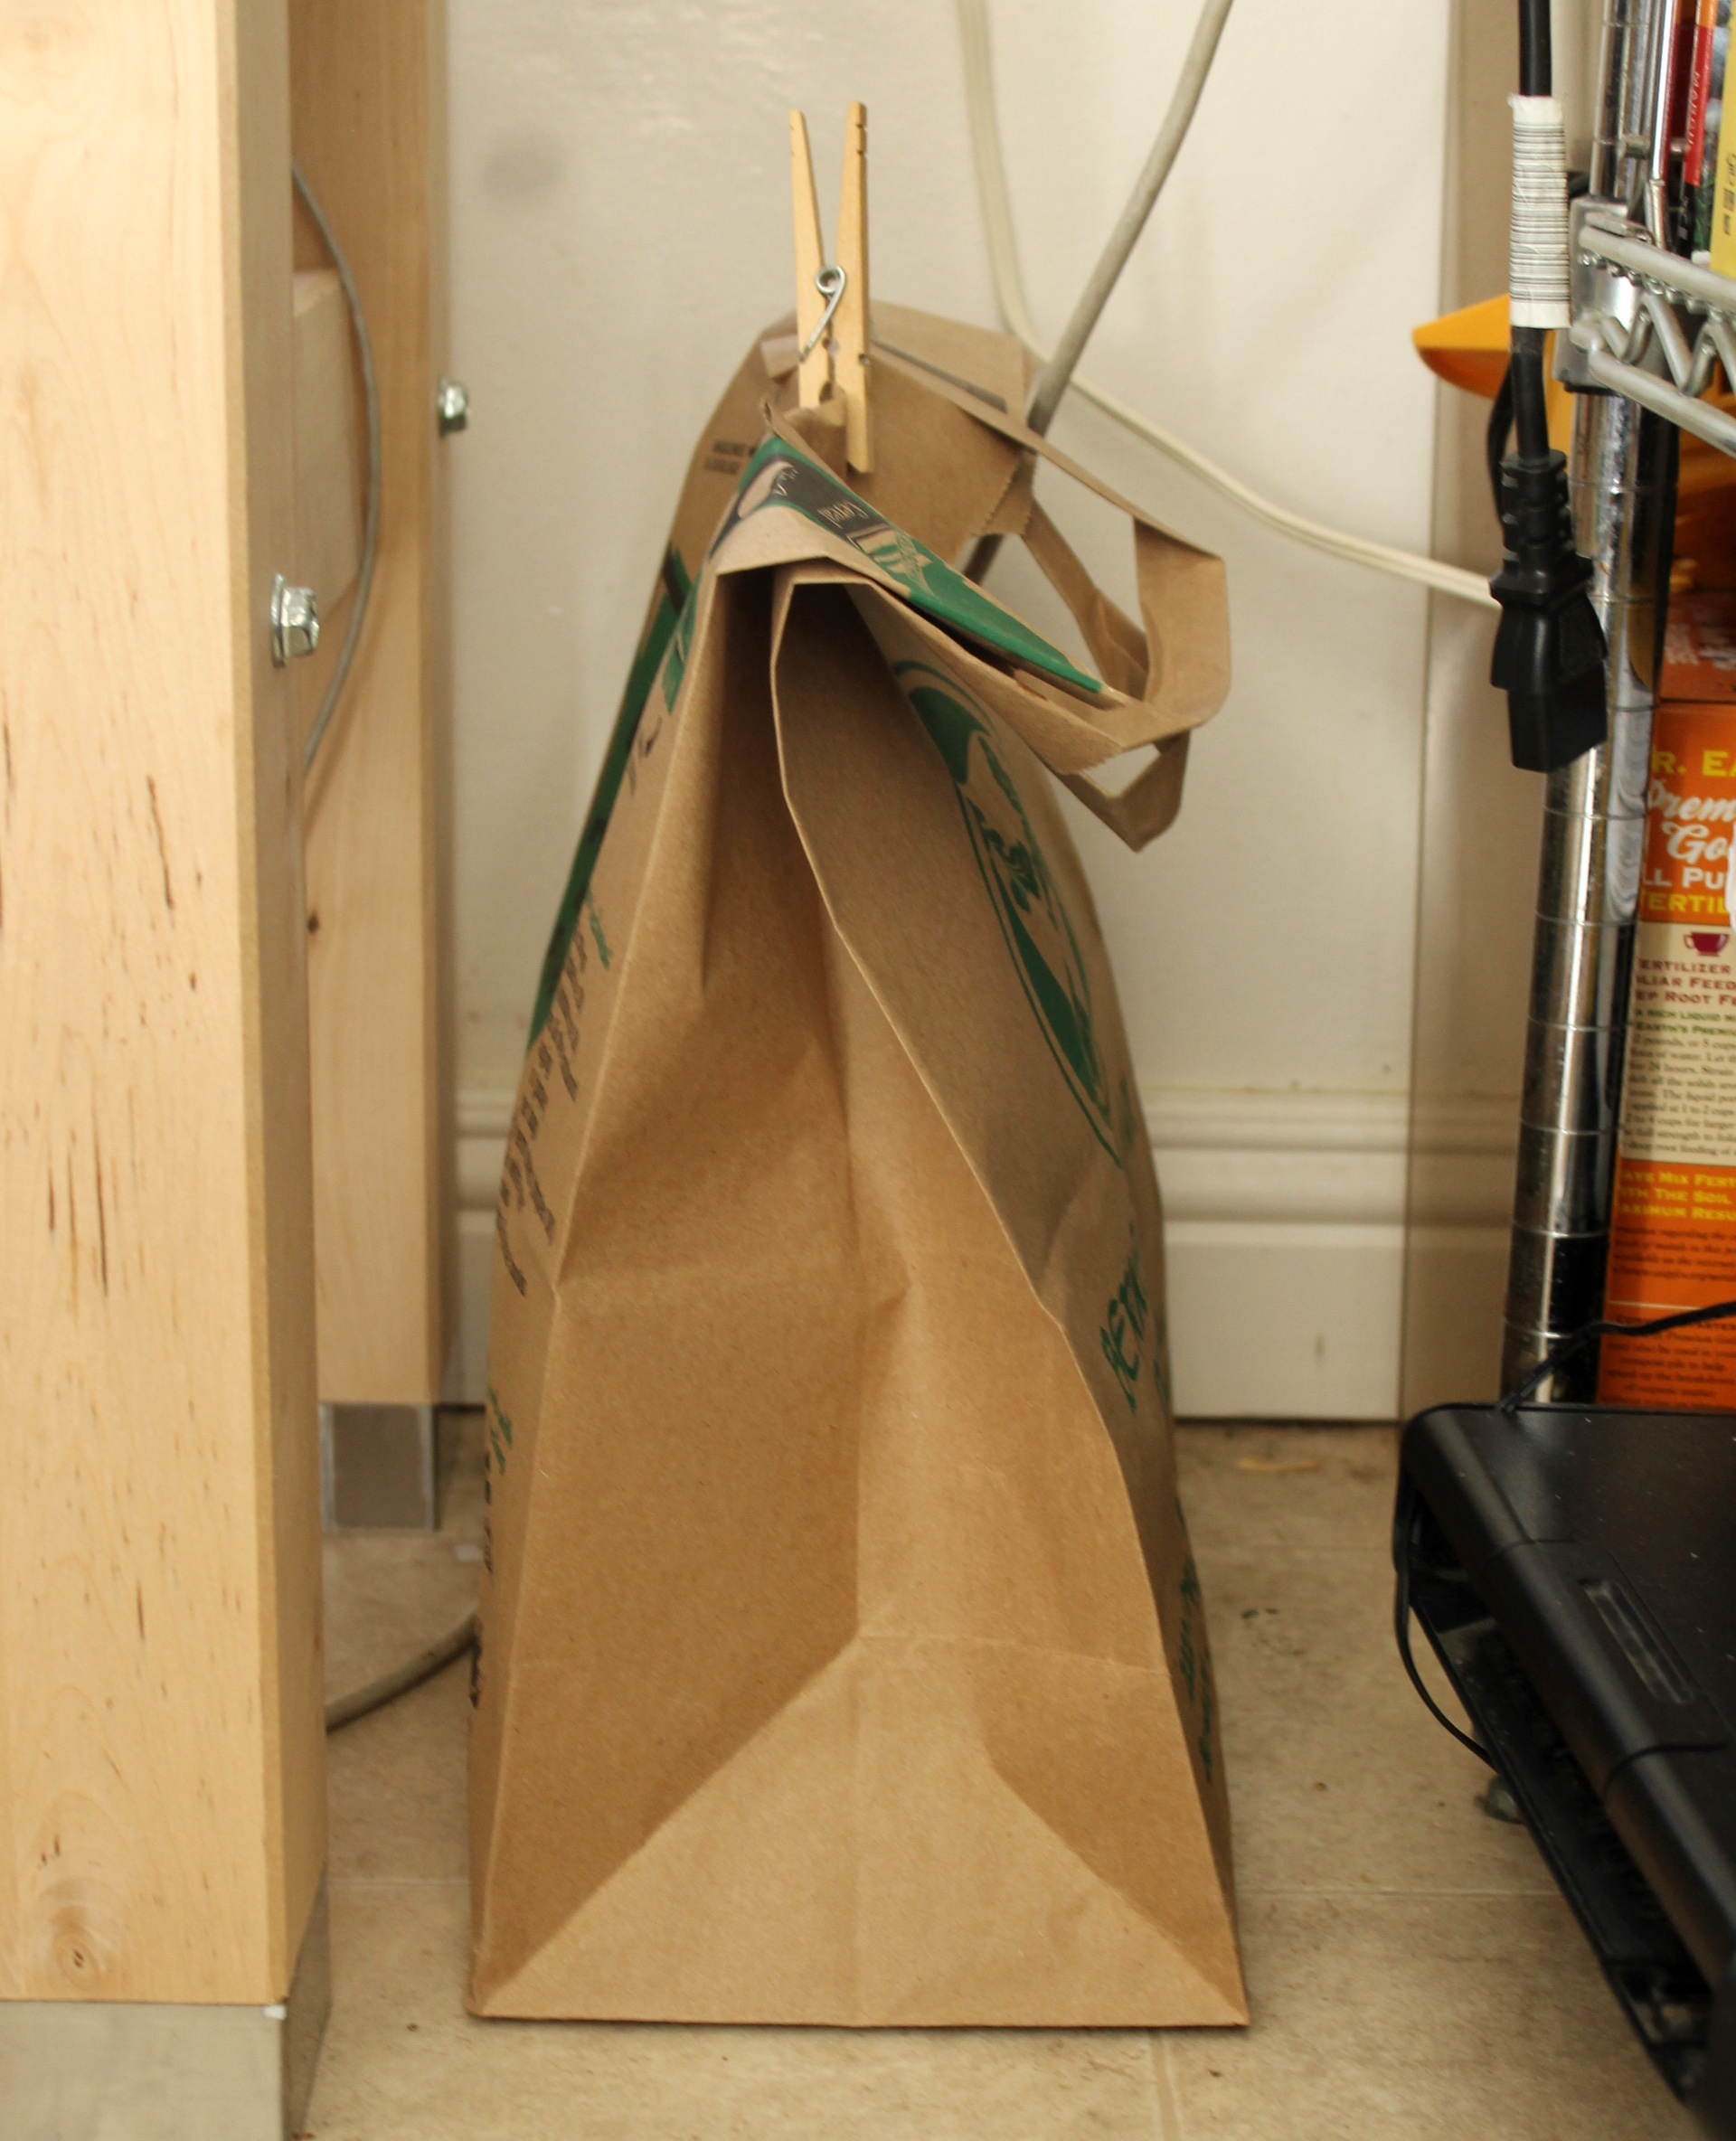 Place the bottles in a paper bag or cardboard box to carbonate in darkness.